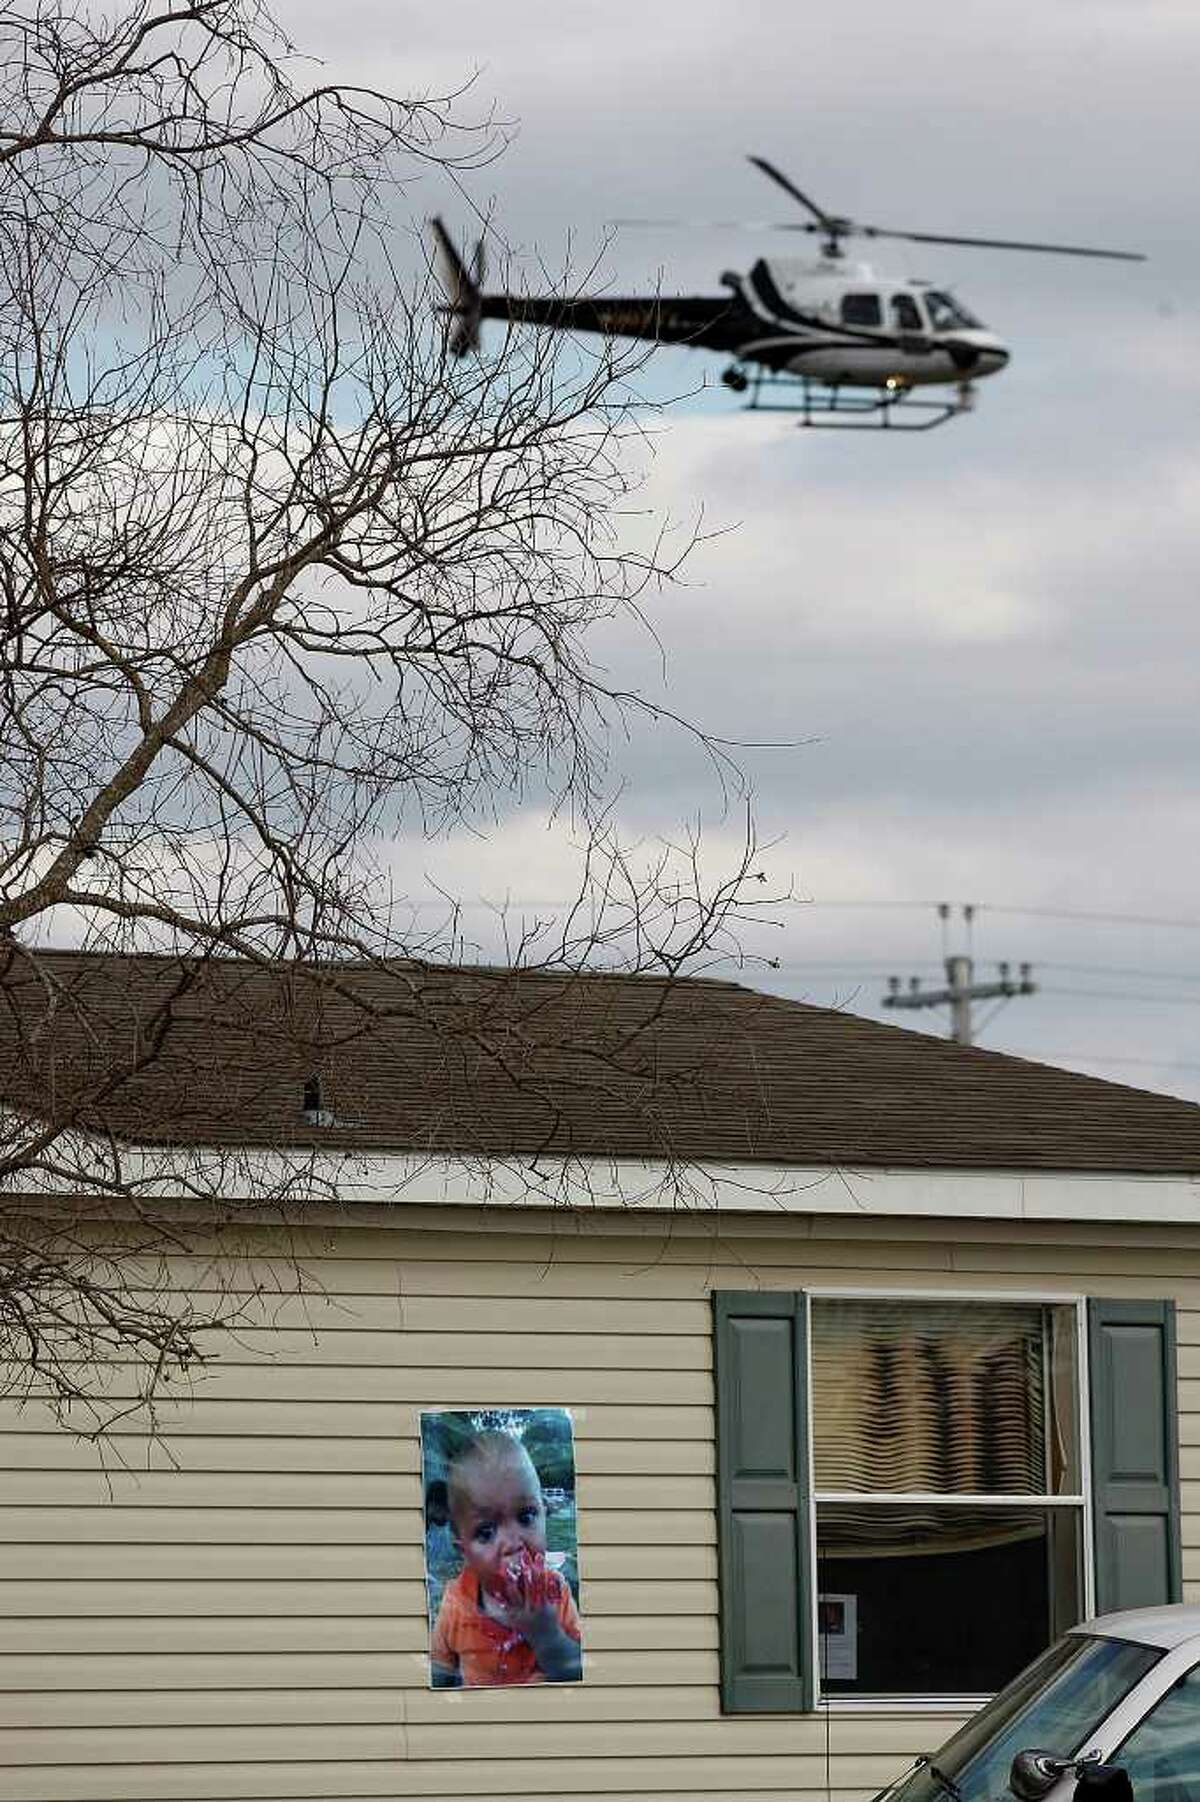 A Department of Public Safety helicopter flies over the home of missing 18-month-old Joshua Davis, Jr. in New Braunfels on Feb. 8.